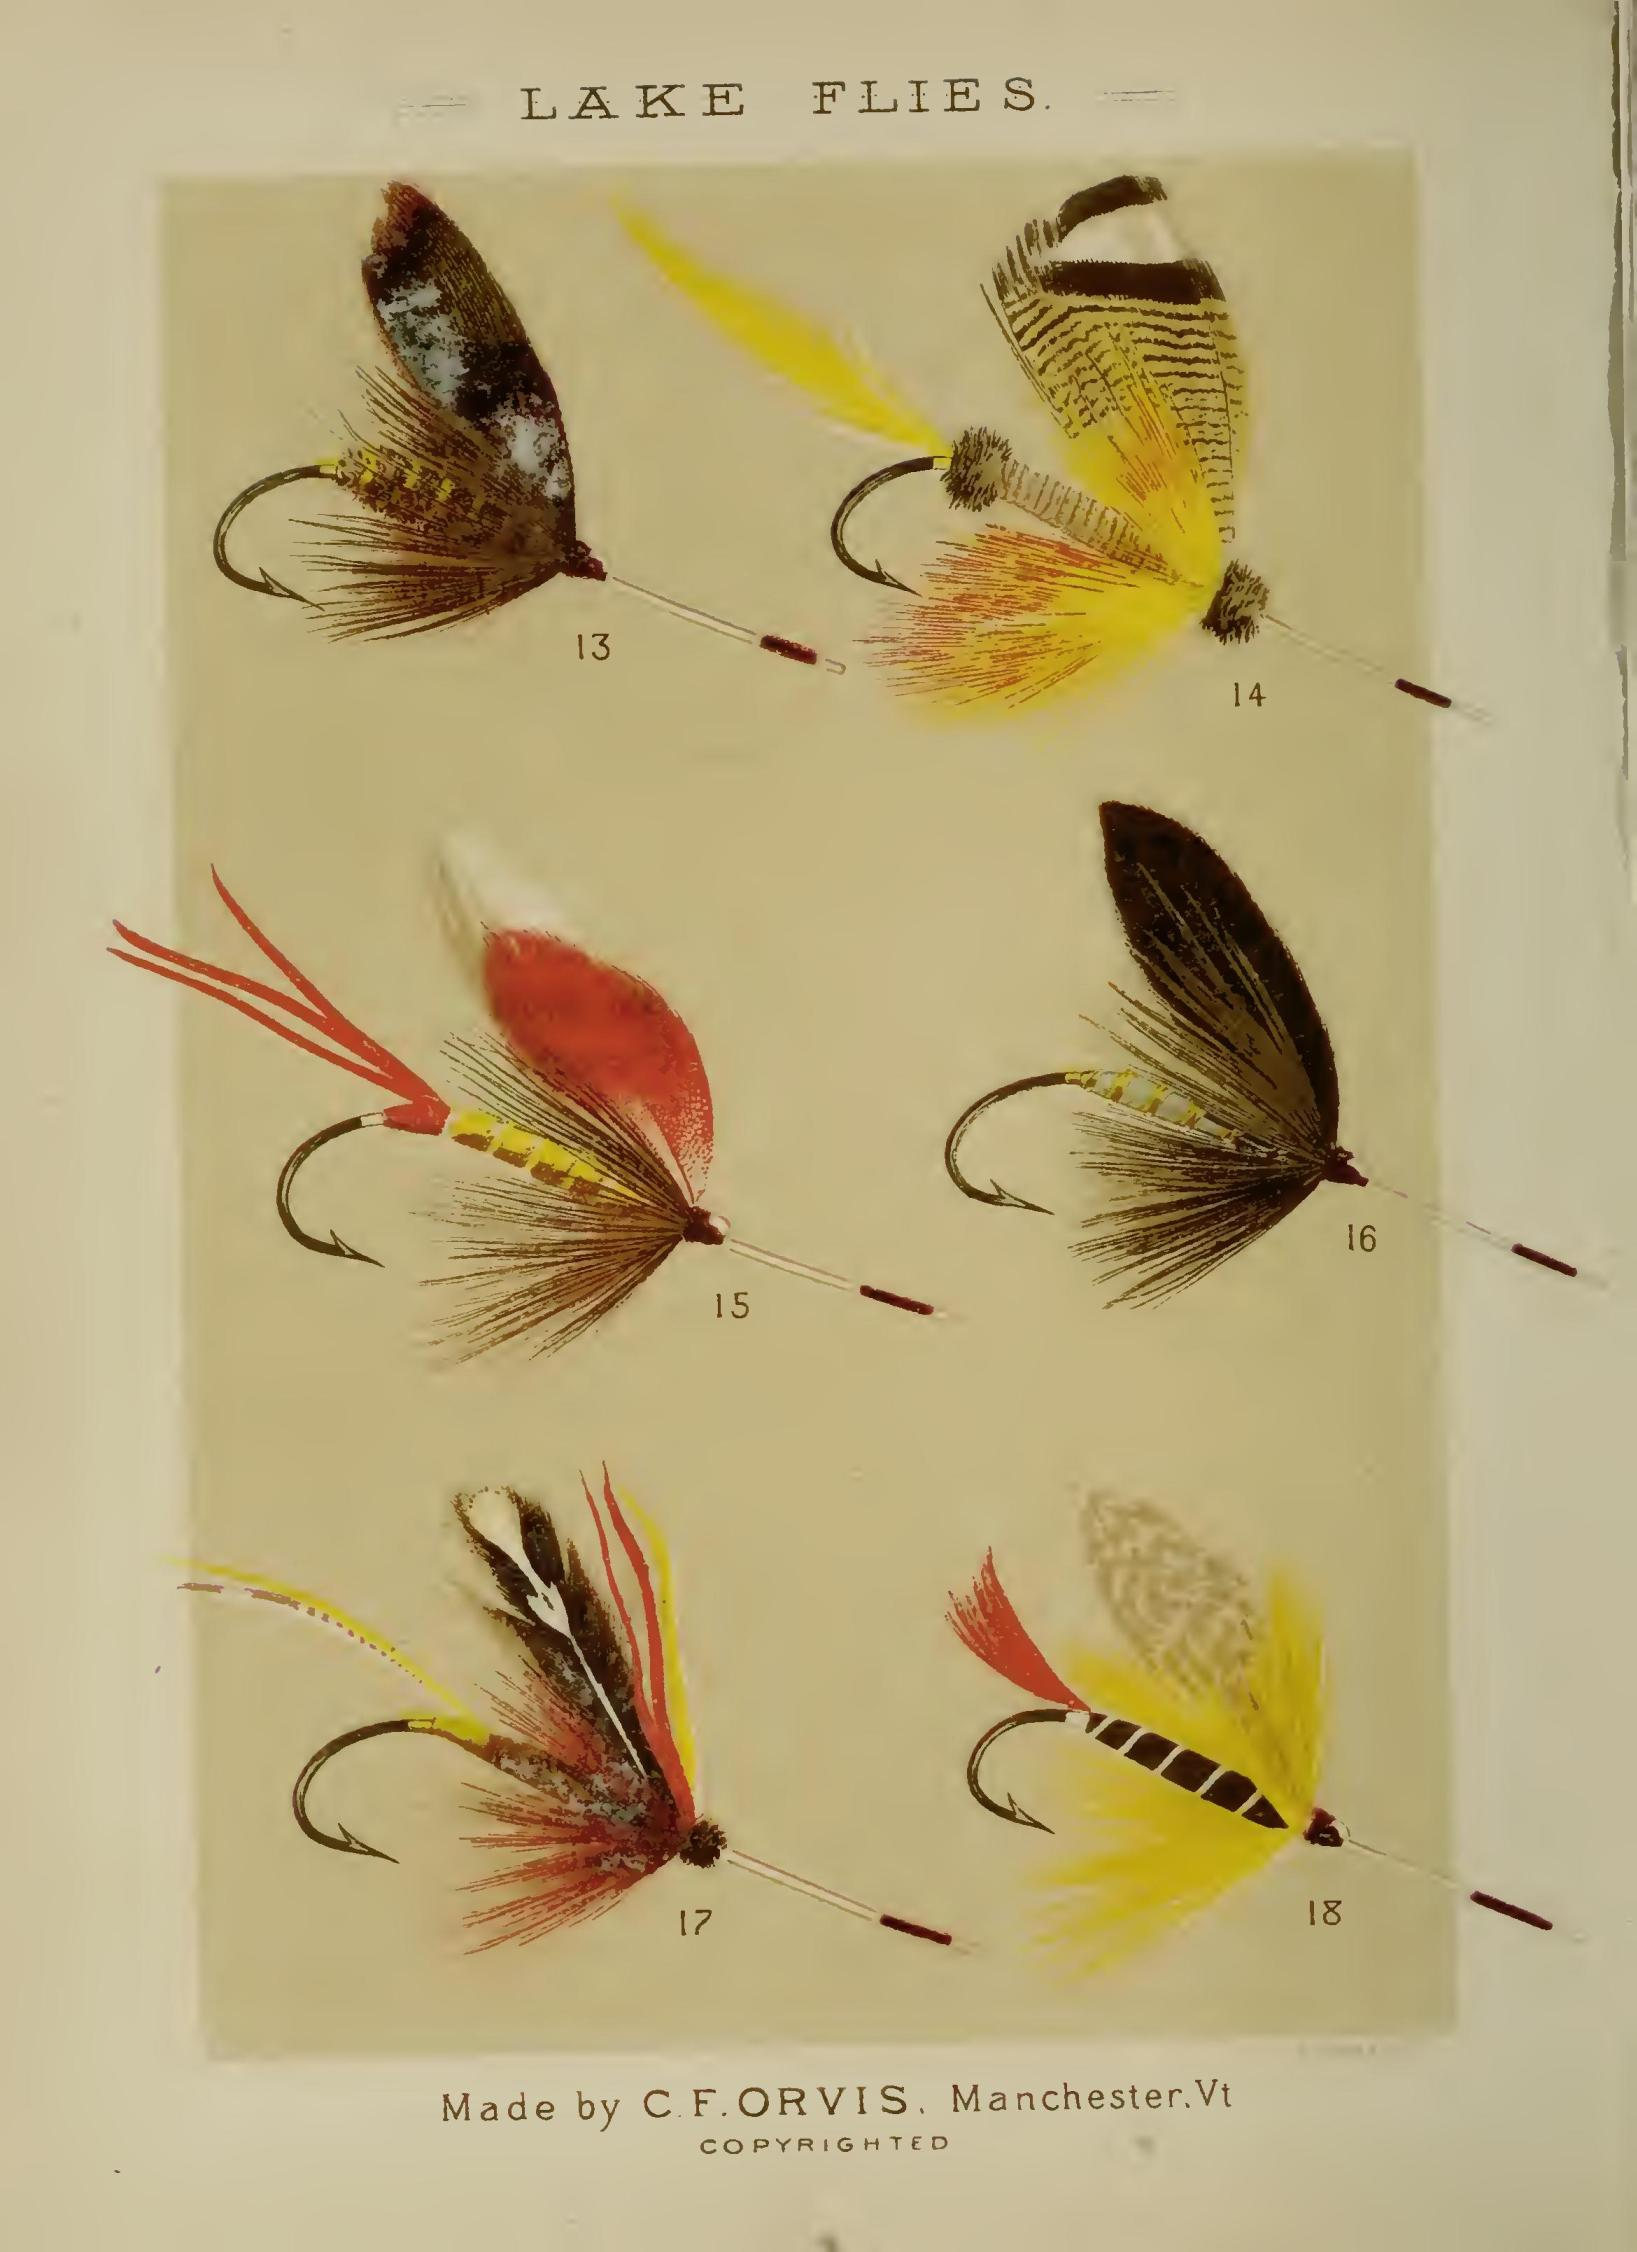 Fishing With the Fly, by Charles F. Orvis and Others